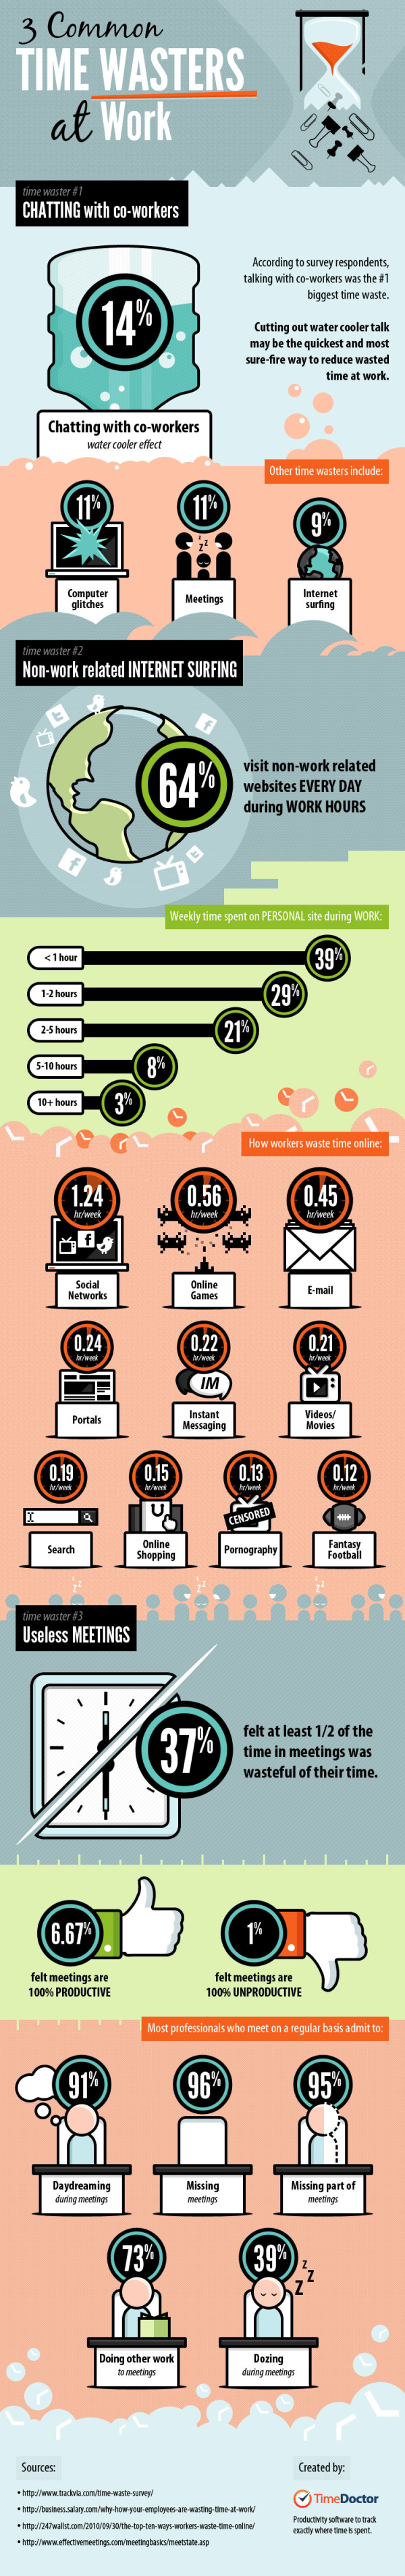 3 Common Time Wasters at Work infographic